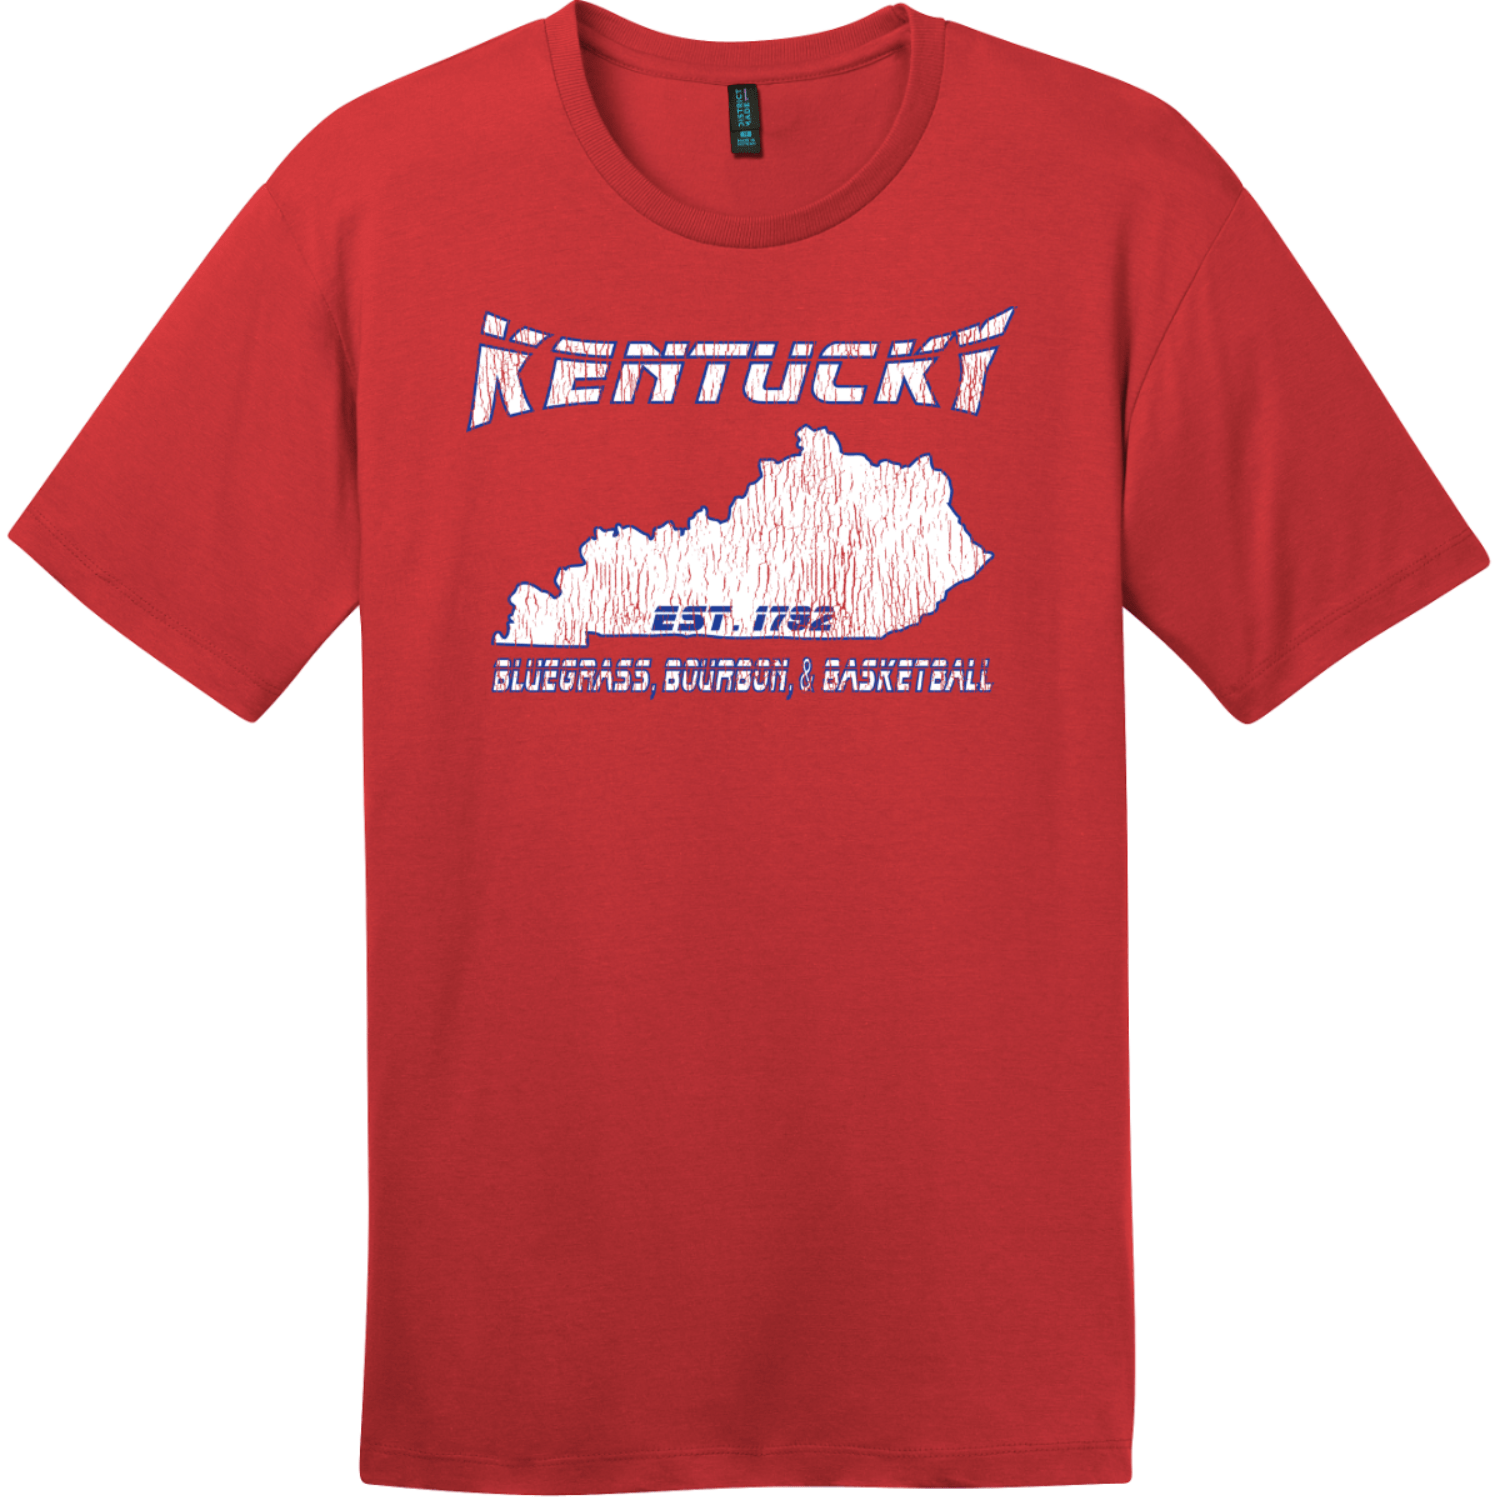 Kentucky Bluegrass Bourbon and Basketball Tee Classic Red District Perfect Weight Tee DT104